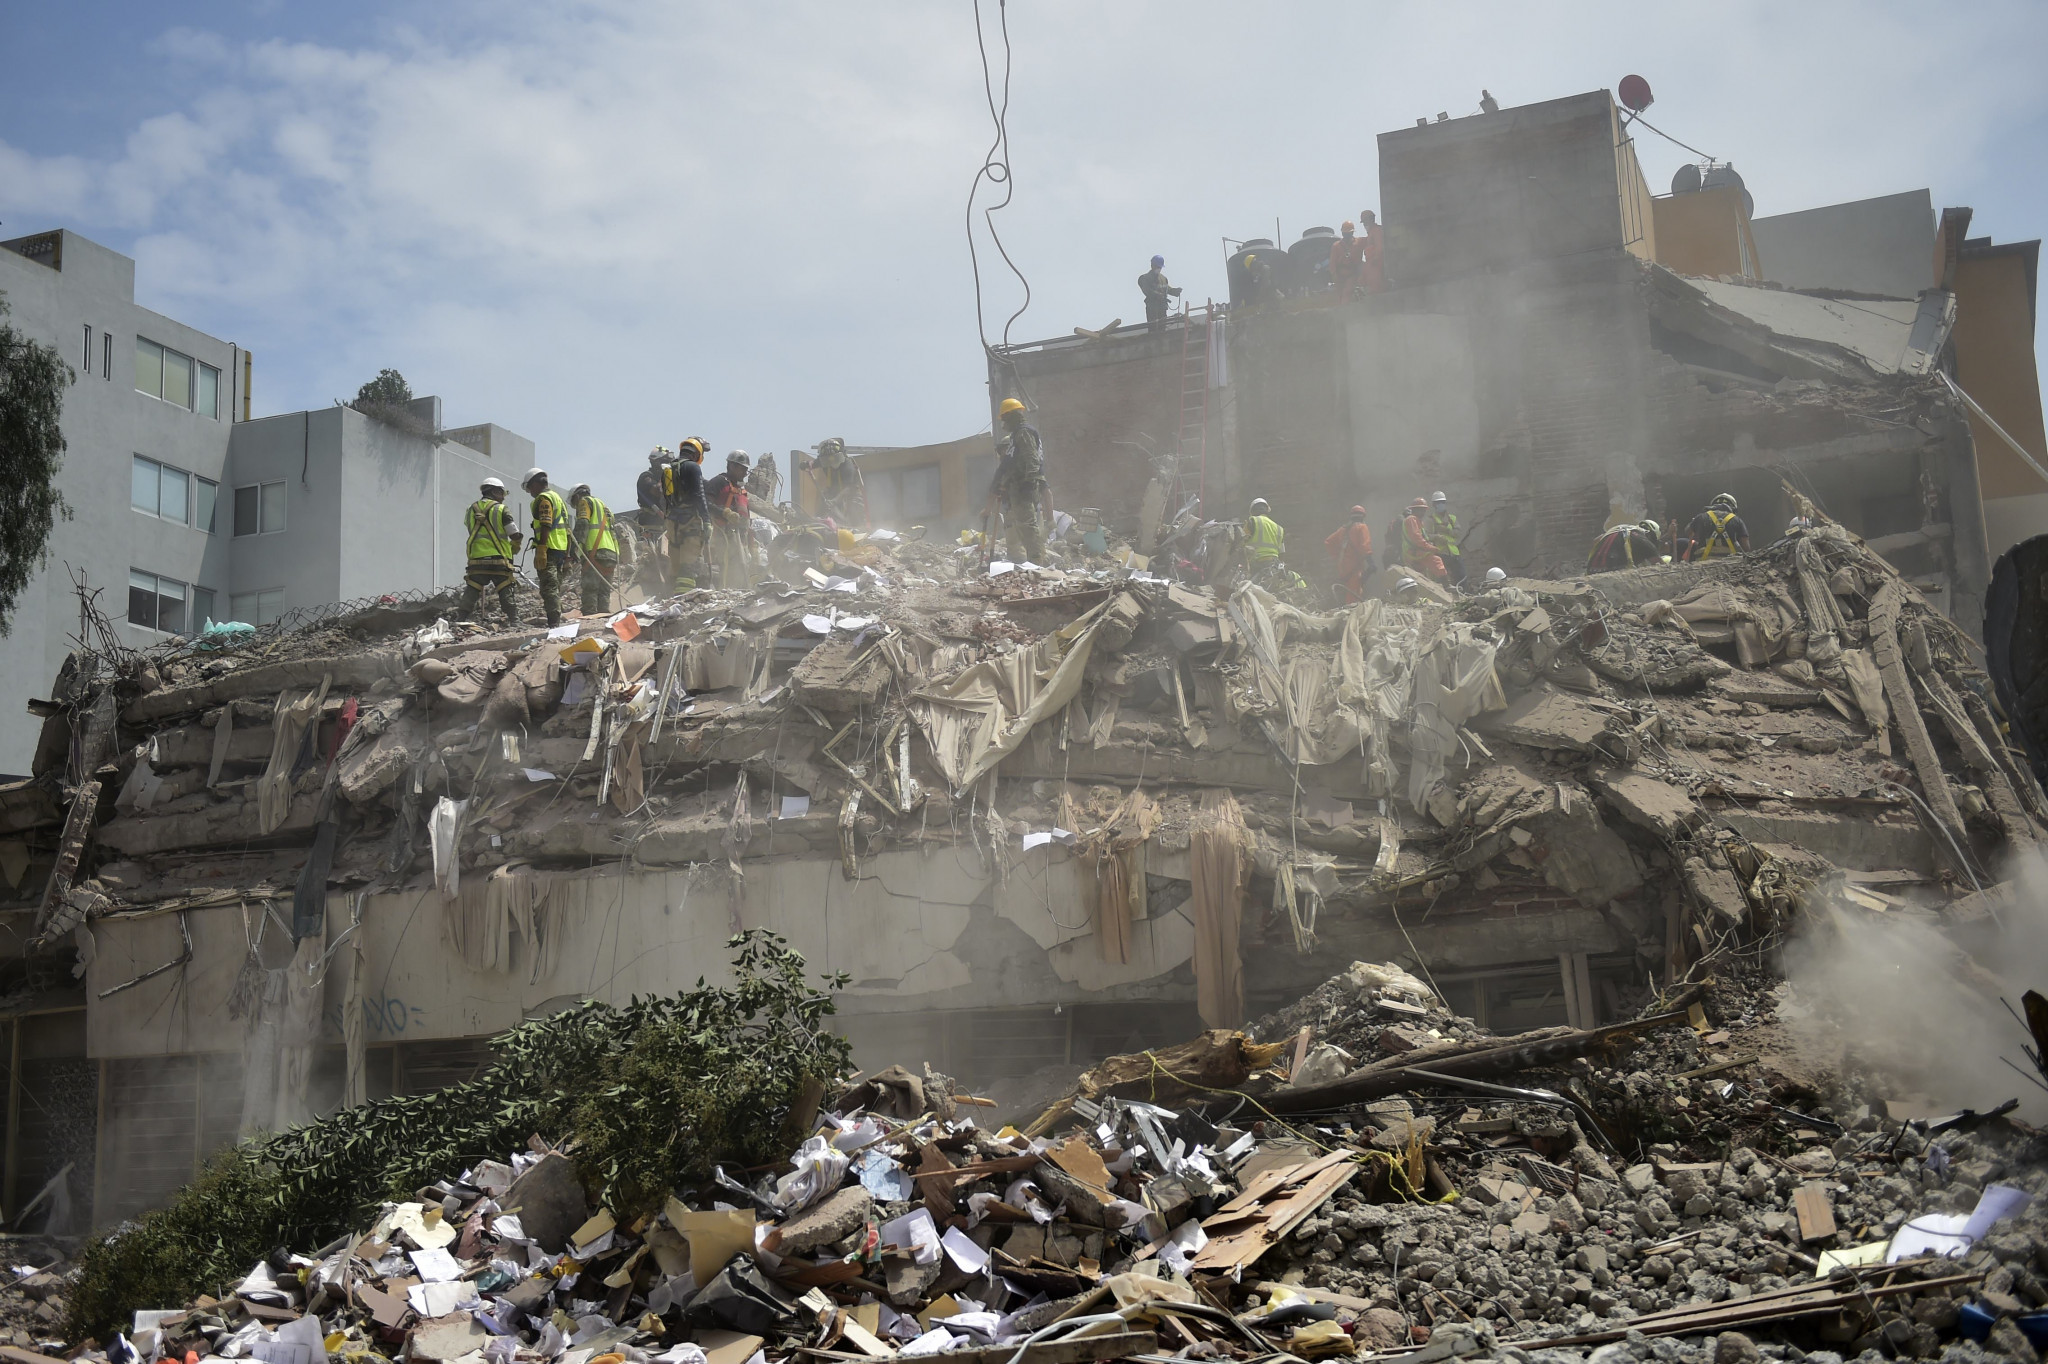 IOC and IPC join fundraising efforts for victims of Mexican earthquake